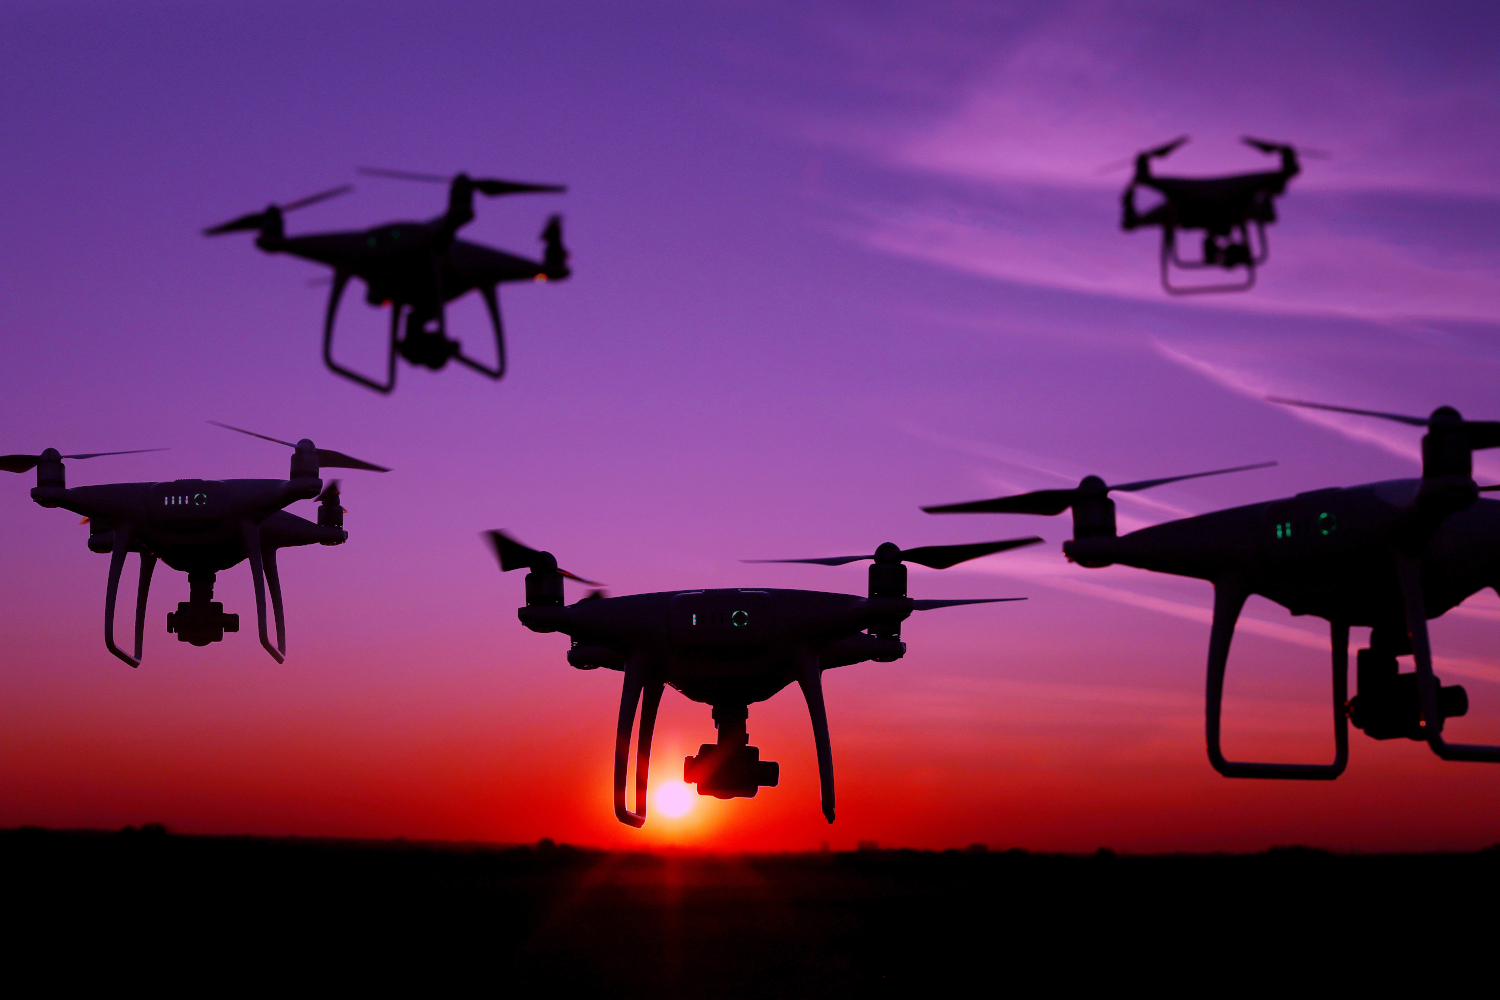 Five drones in the sky at sunset